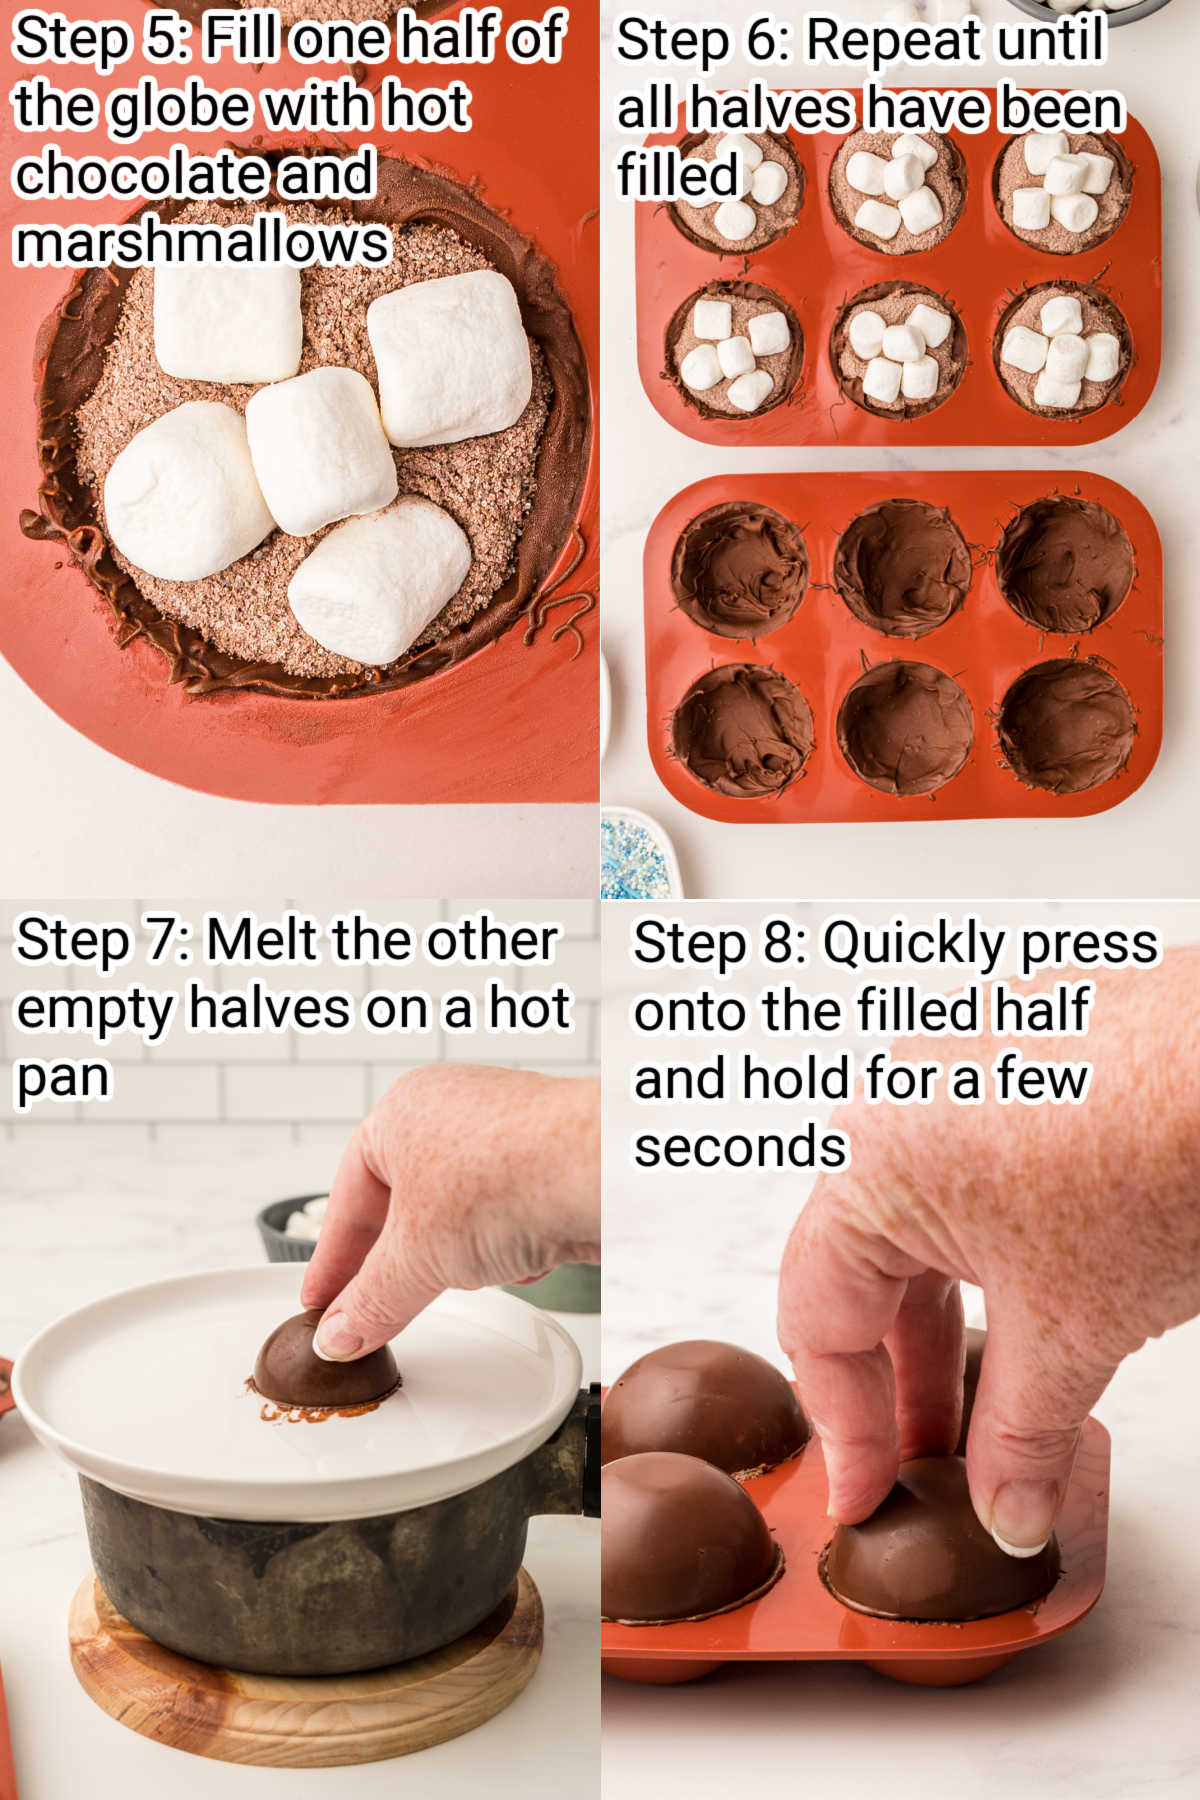 four images next to each other showing how to make hot chocolate balls, steps 5 through 8